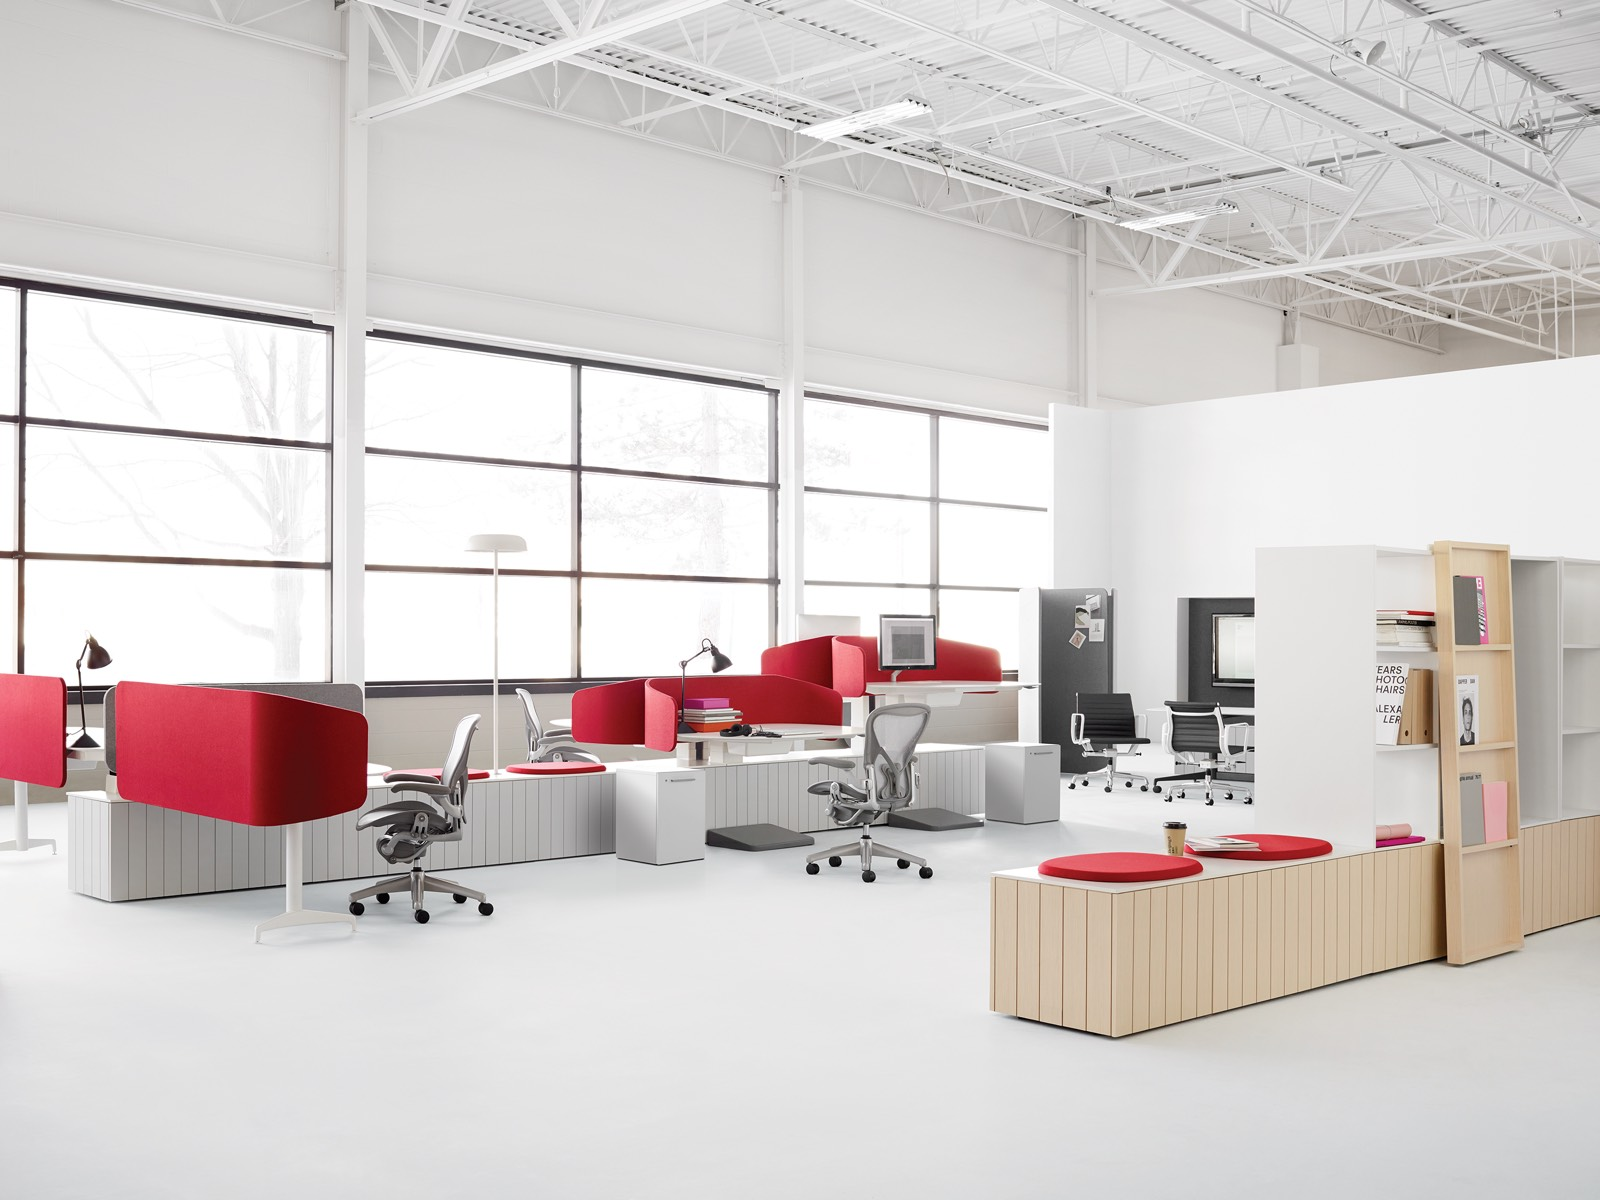 An open office in an industrial building featuring grey Aeron chairs at height-adjustable workstations with red privacy screens.